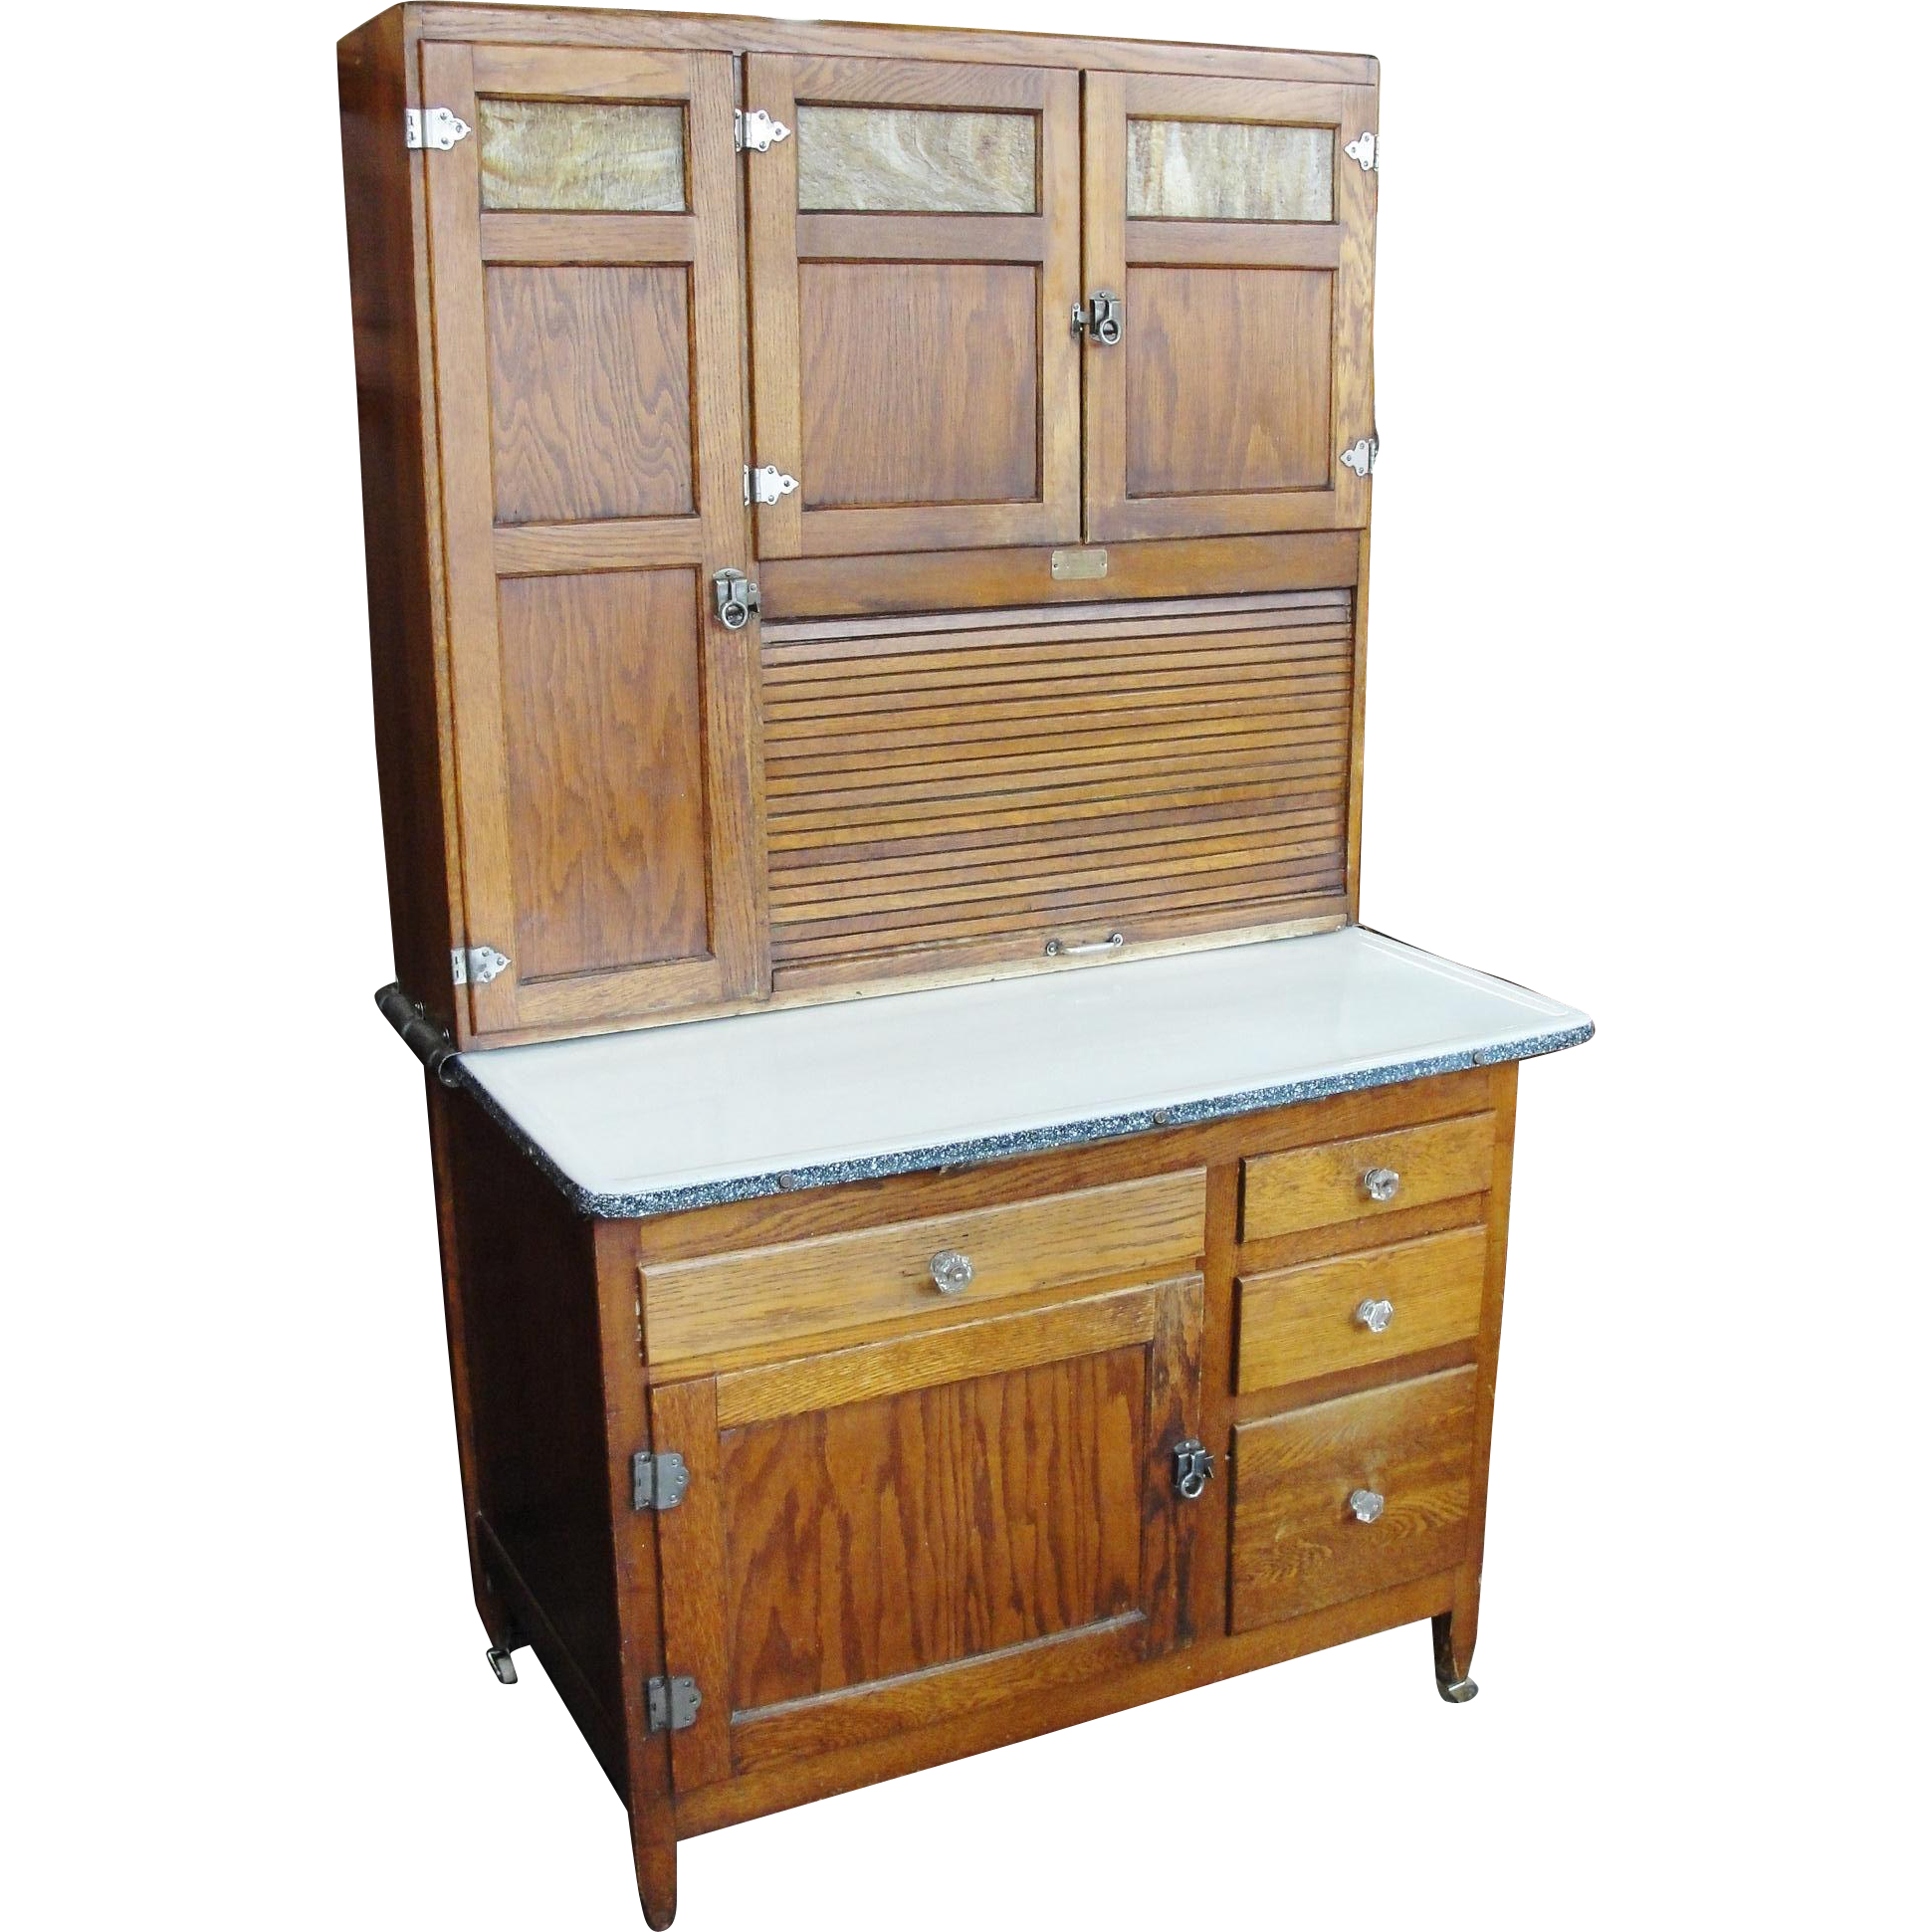 Original Finish 1920's Oak Sellers Kitchen Cabinet From